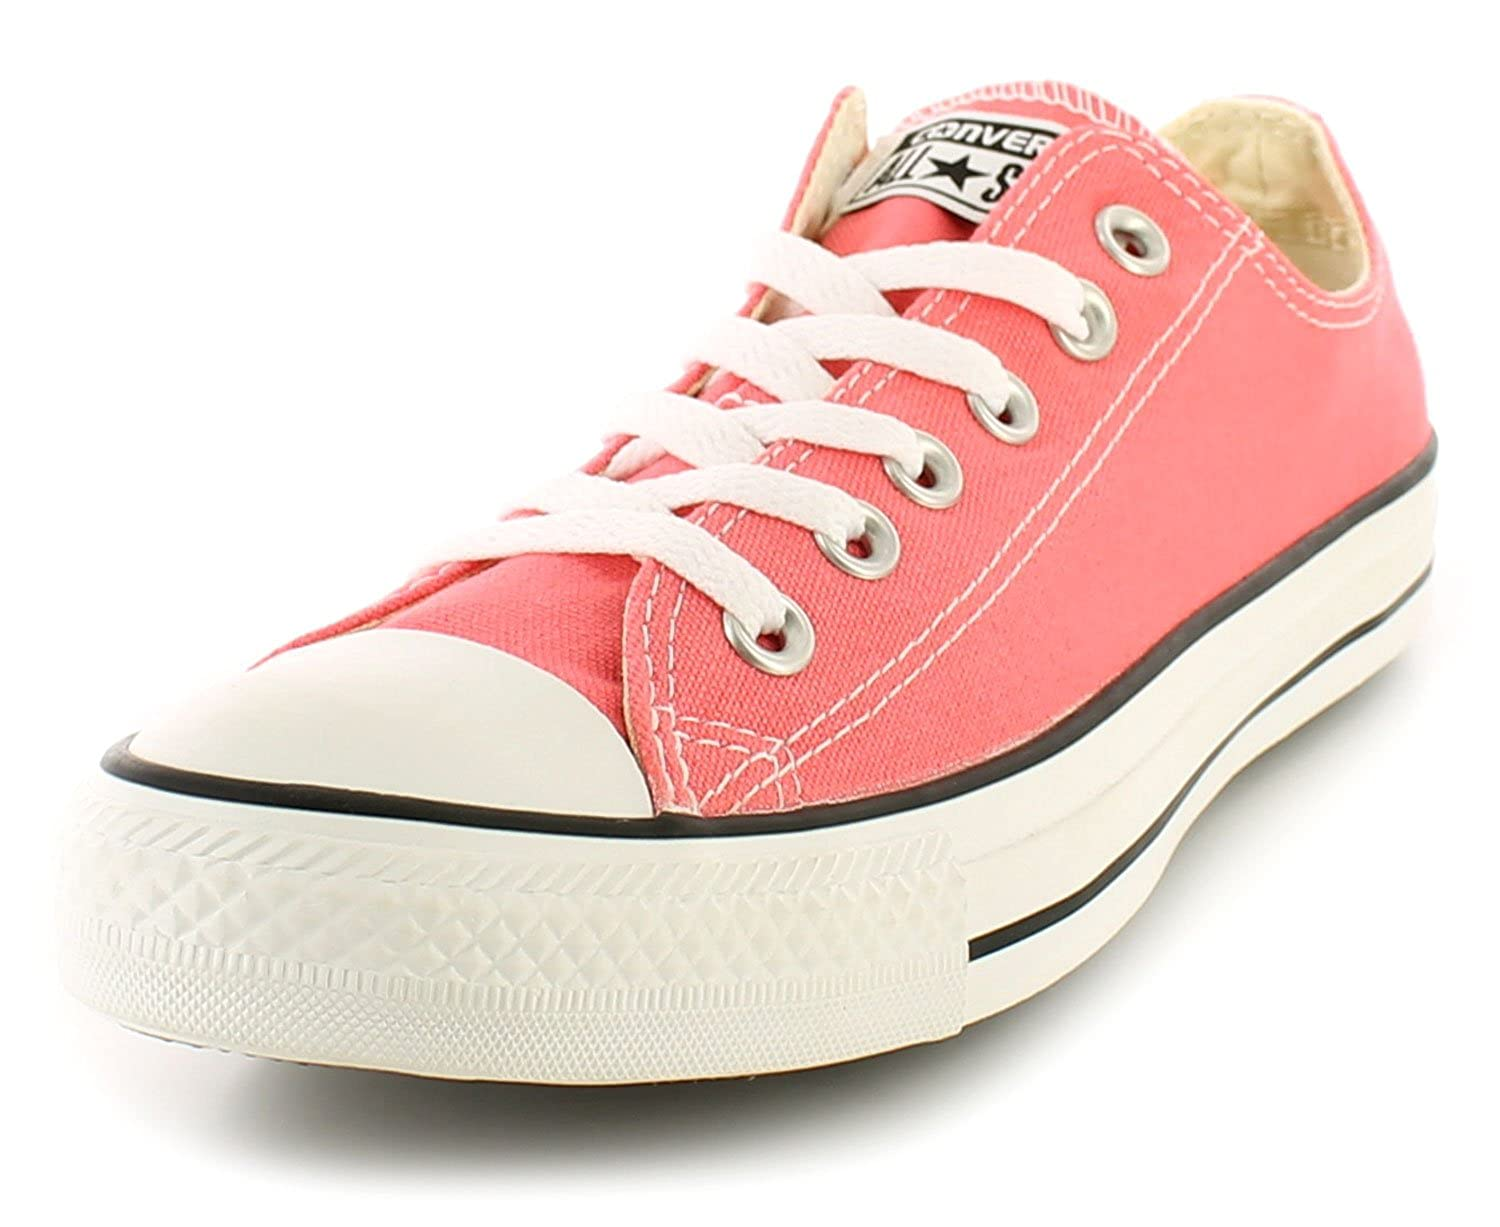 df2632461a23 Converse New Ladies Womens Pink Canvas Chuck Taylor Lace Ups Trainers. - Carnival  Pink - UK Size 7.5  Amazon.co.uk  Shoes   Bags